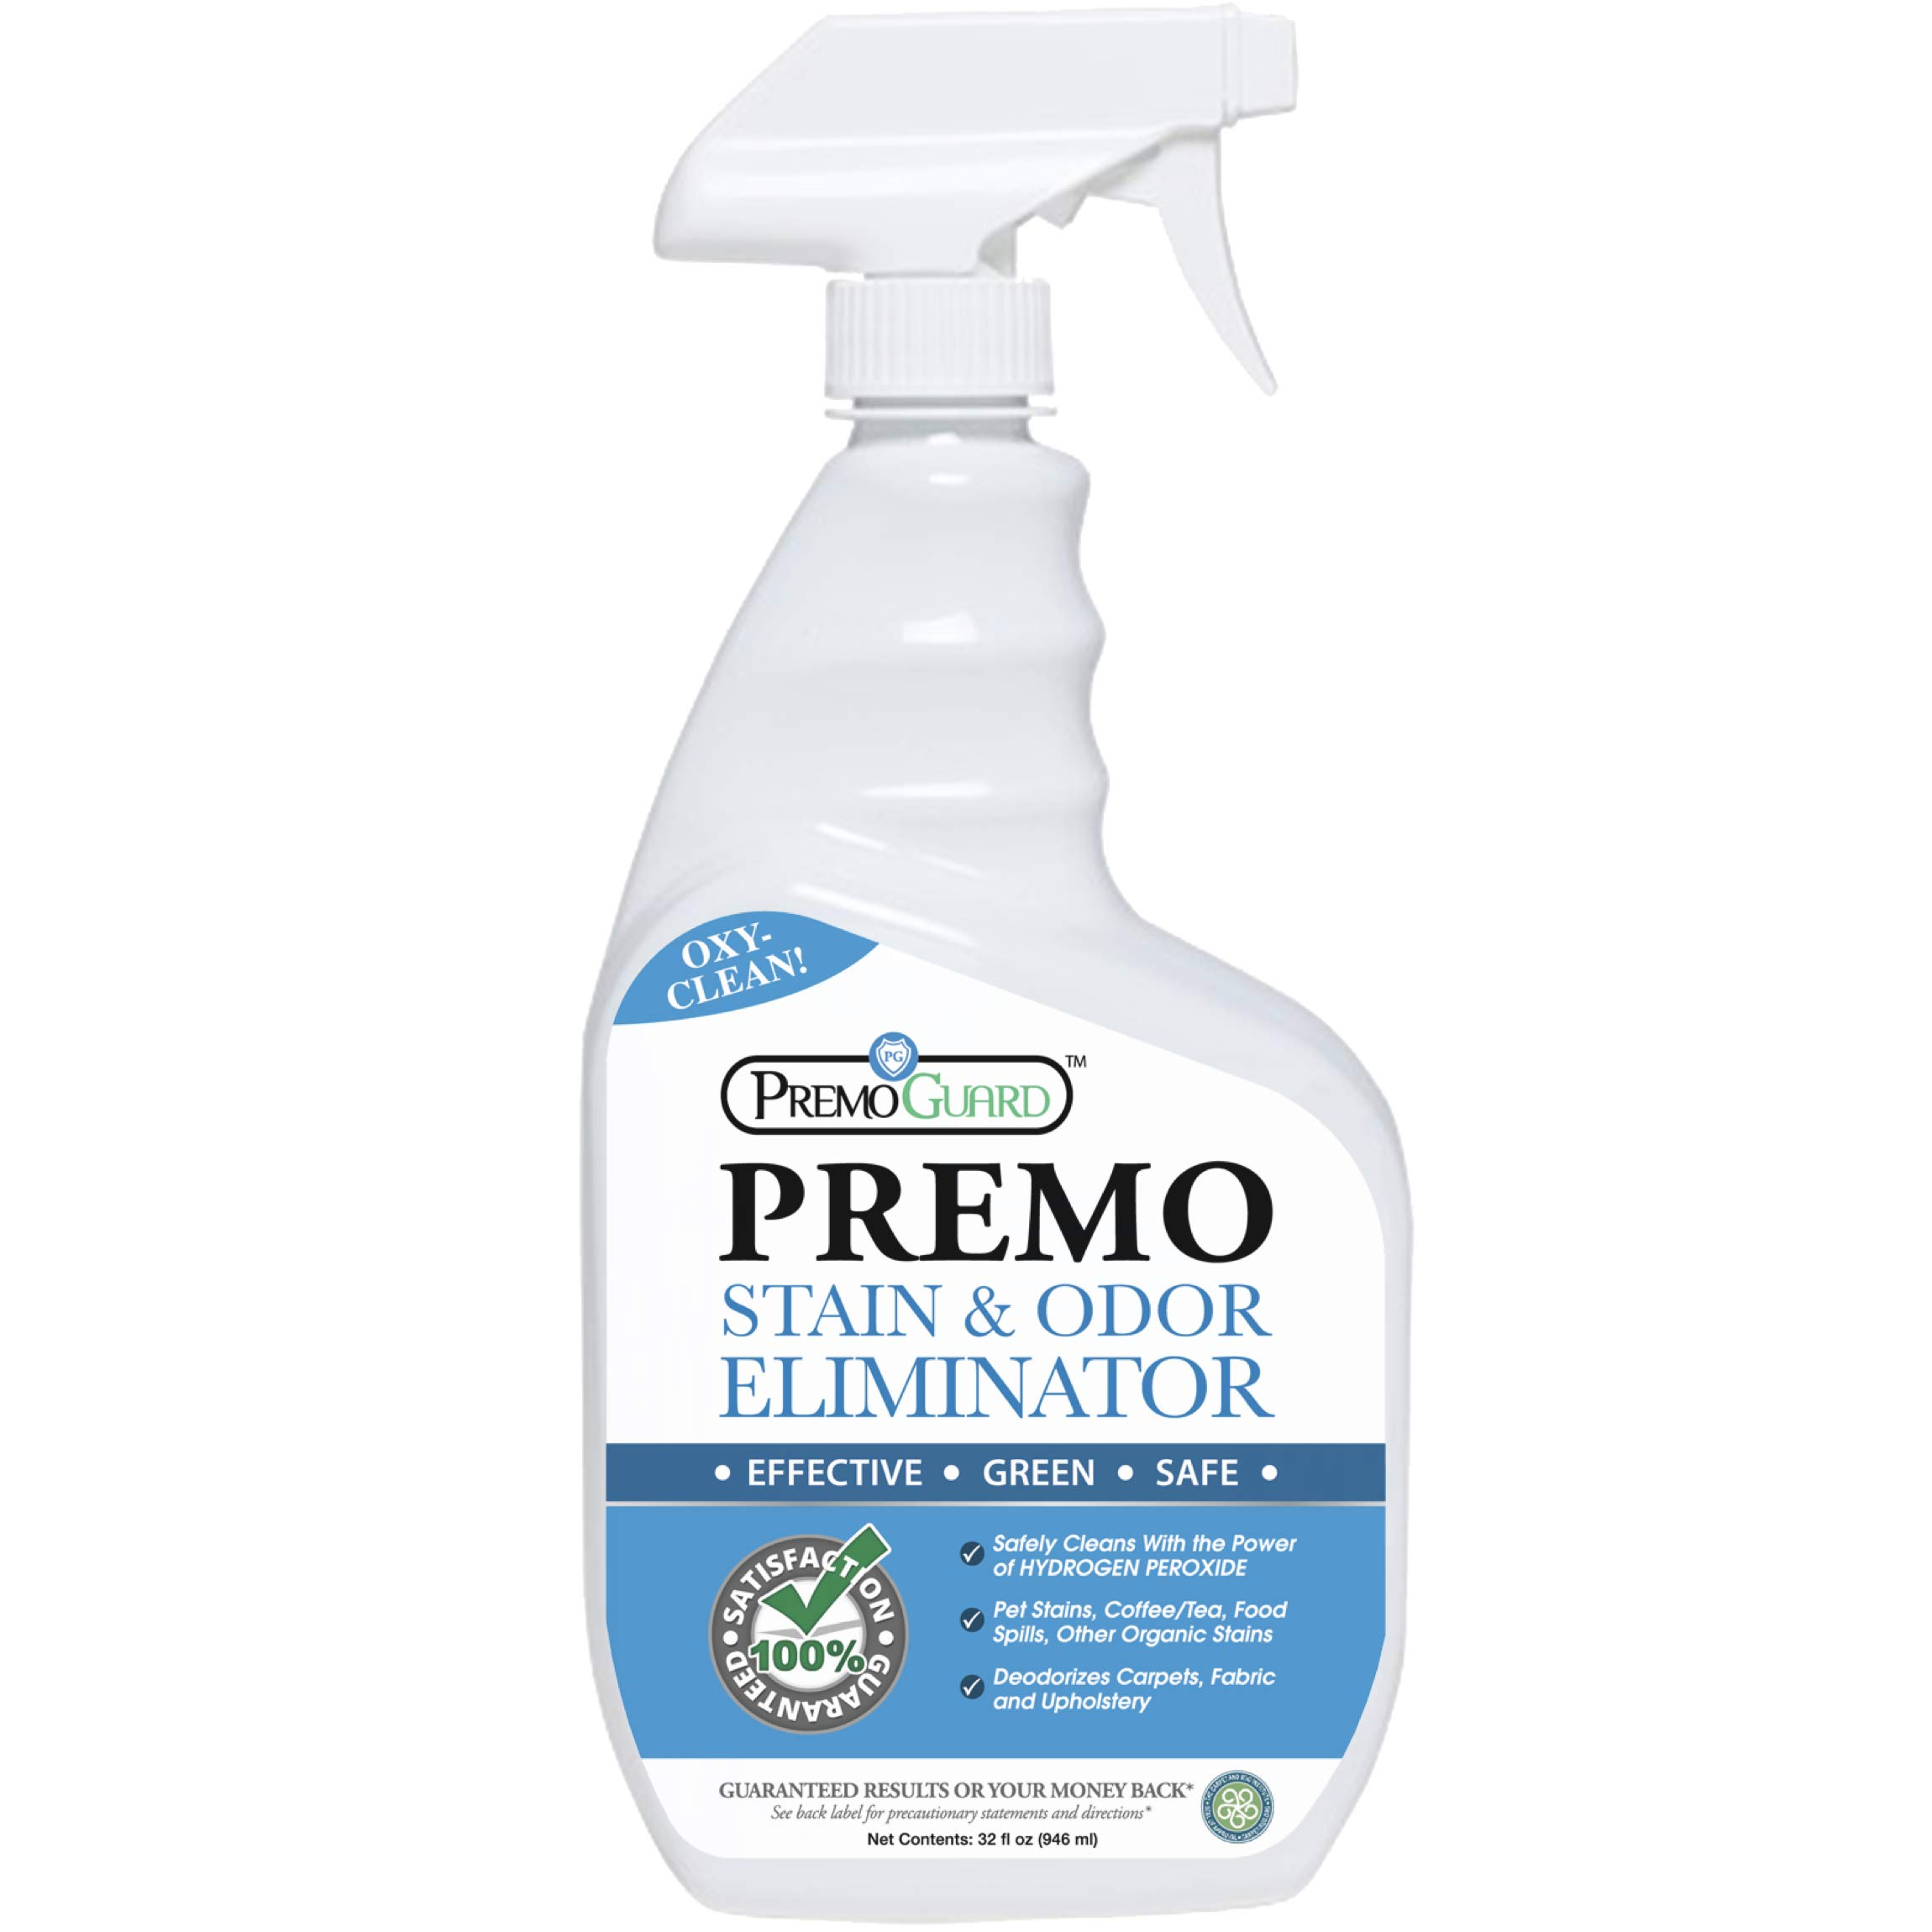 STAIN & ODOR REMOVER - Professional Enzyme Spray - Removes Soiling From Dogs/Cats/Pets - Safely Cleans Carpet/Upholstery/Fabric - Effective On Wine/Blood/Vomit/Urine - Natural Eco Friendly - 32 oz